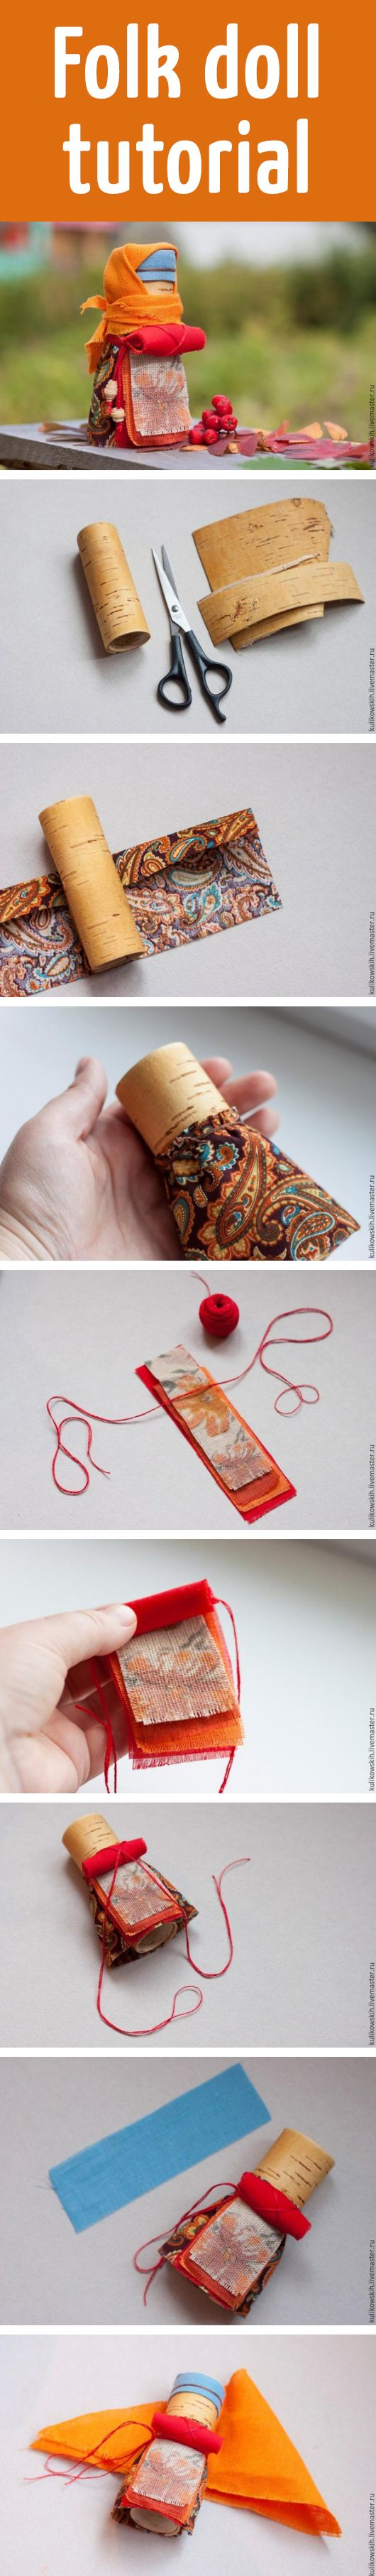 Folk doll tutorial